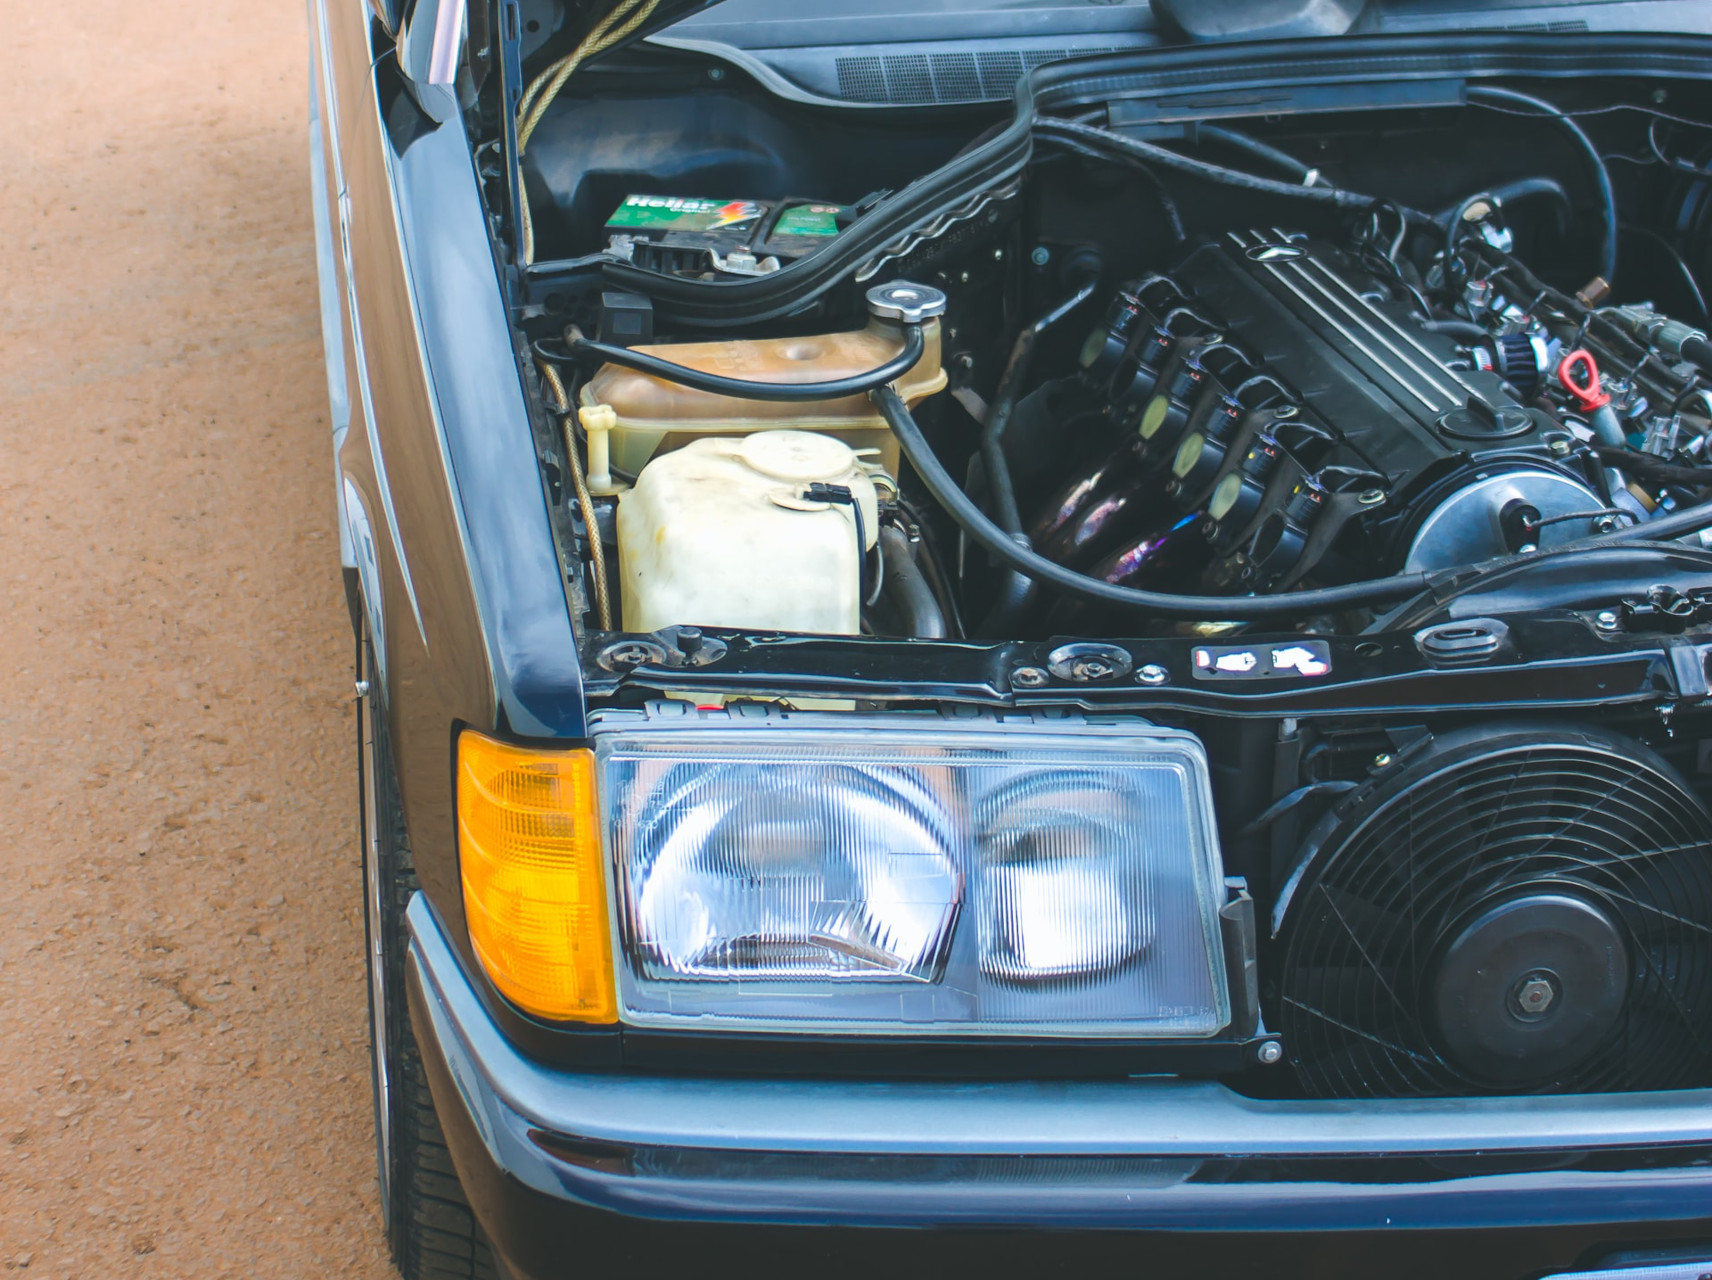 Car with opened hood: the engine